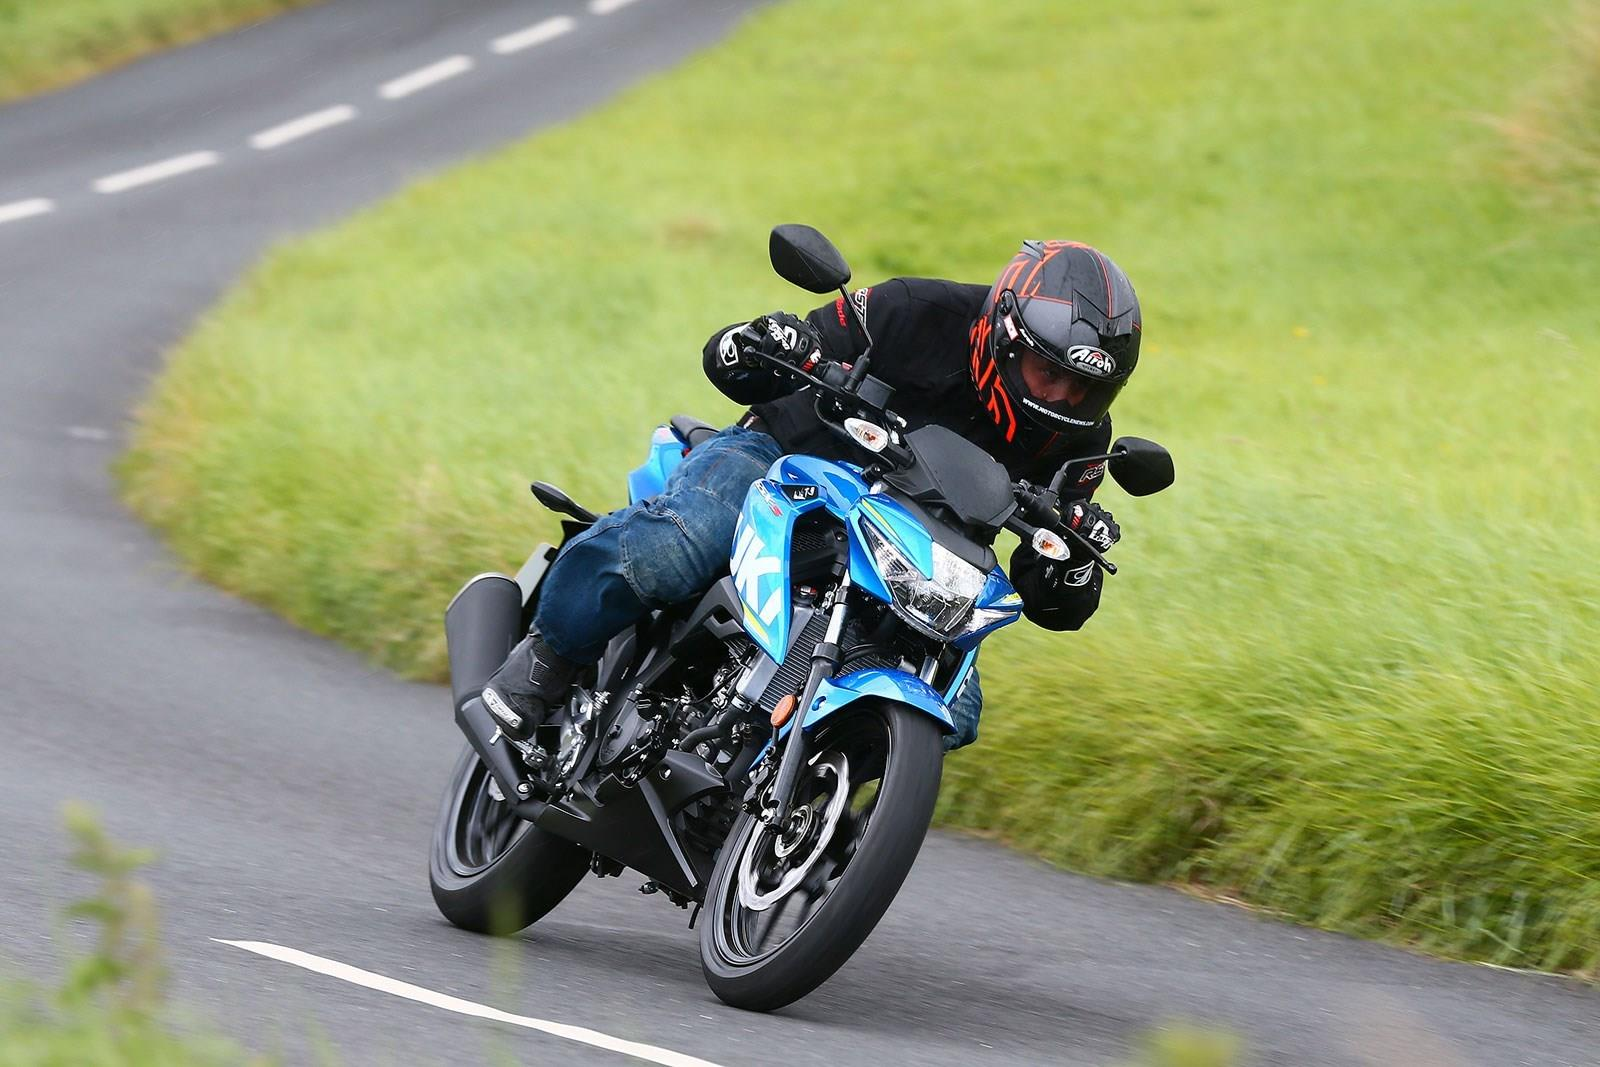 It might be a while until Gareth can ride the Suzuki GSX-S 125 this enthusiastically...